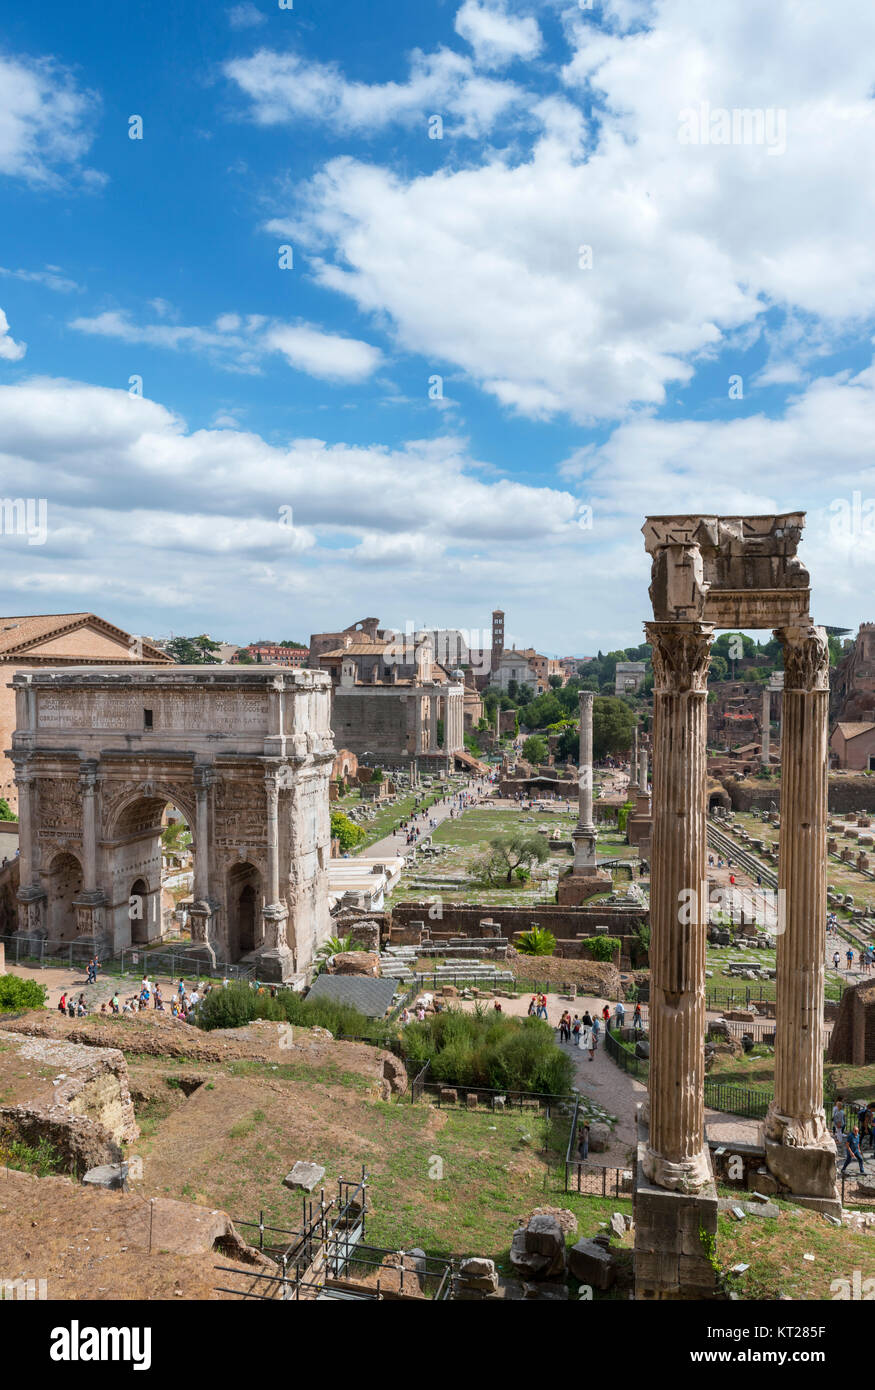 View from the Tabularium down Via Sacra with Arch of Septimius Severus to left and Temple of Vespasian and Titus - Stock Image